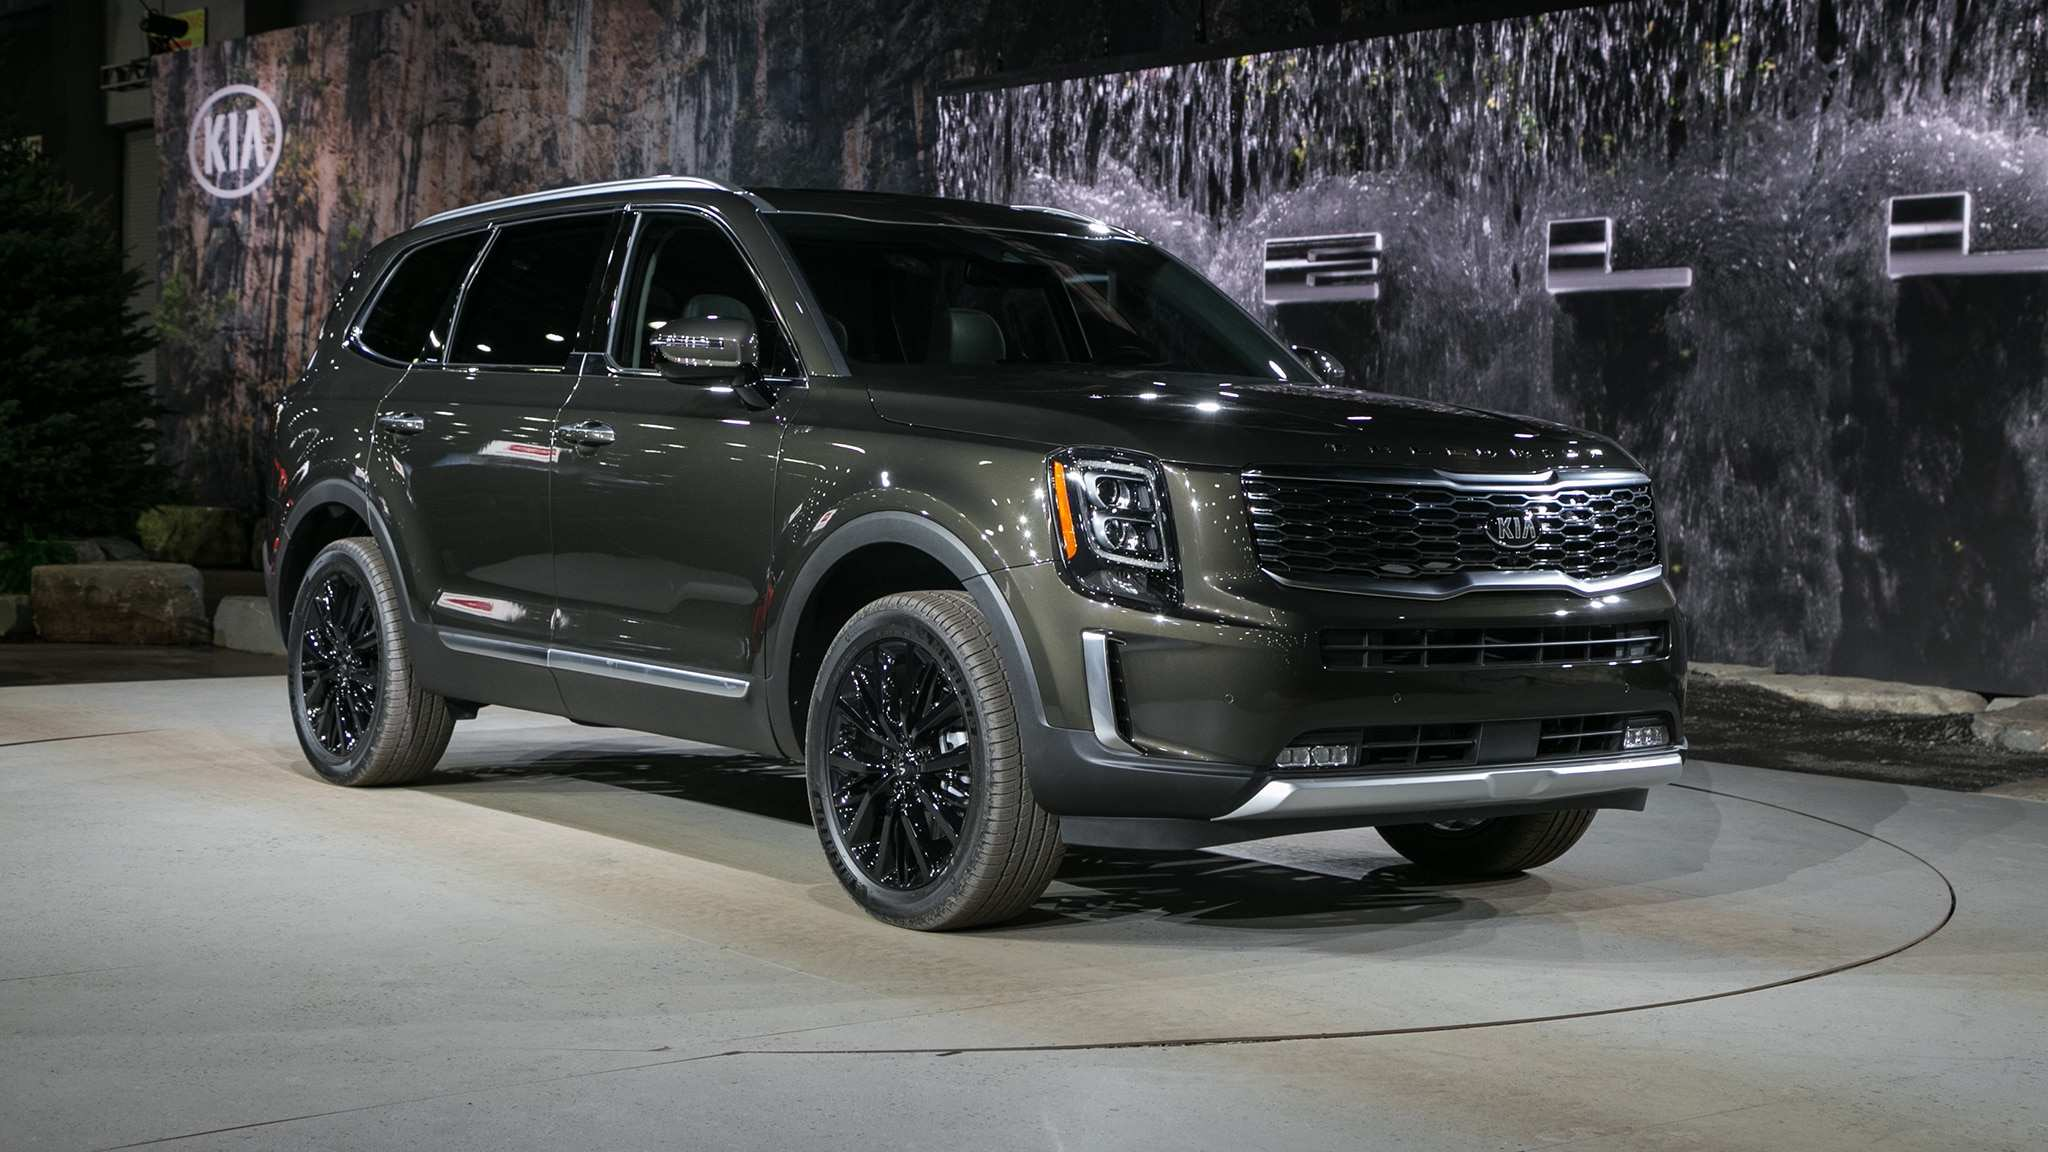 64 Concept of 2020 Kia Telluride Brochure Speed Test by 2020 Kia Telluride Brochure